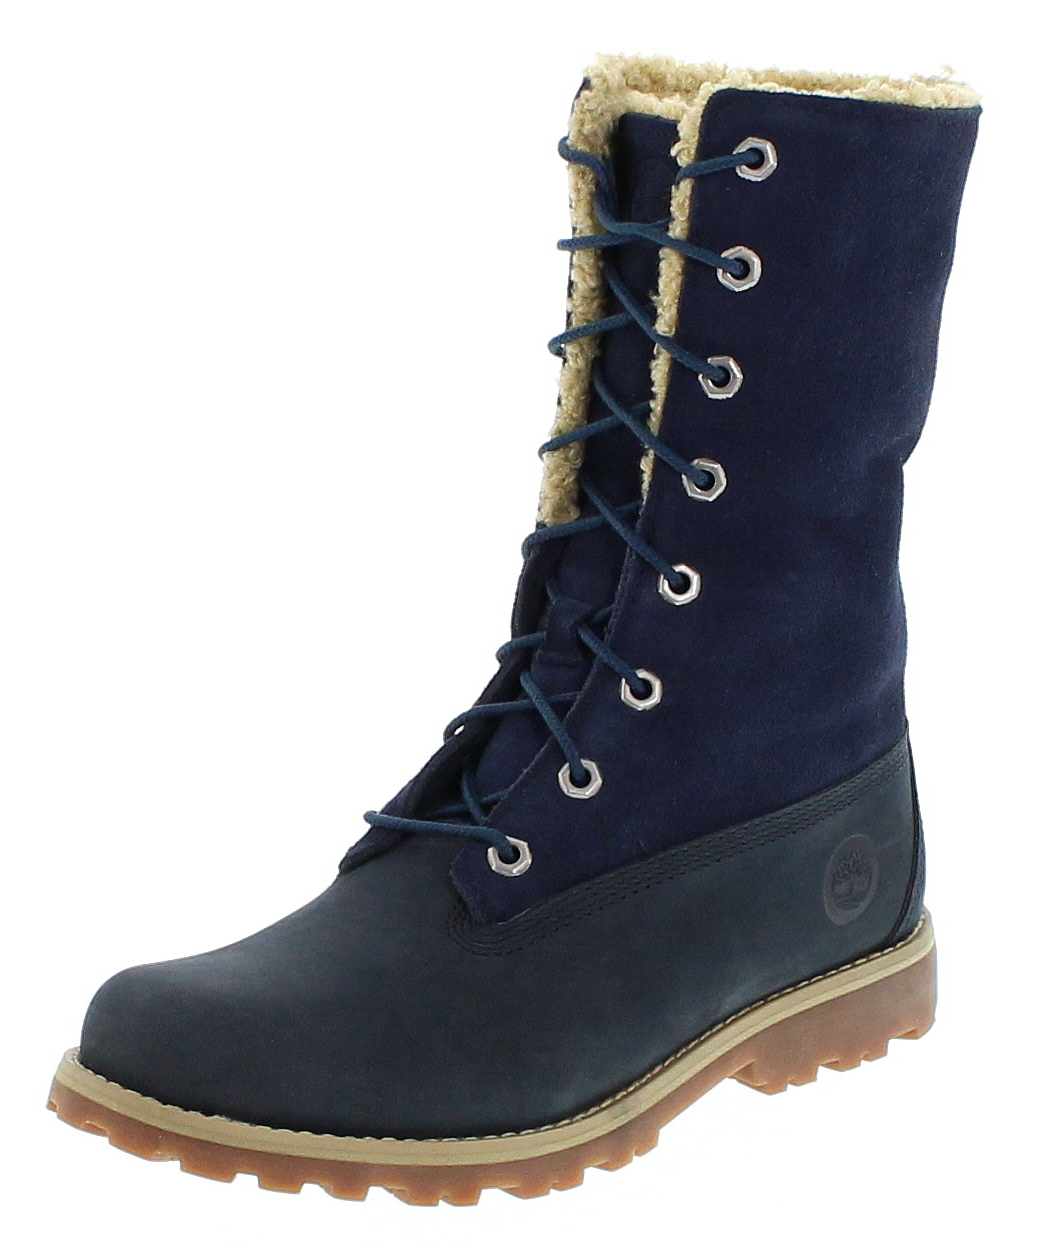 Timberland C1690A KIDS AUTHENTICS 6IN SHEARLING BOOT Blau Kinder Winterstiefel